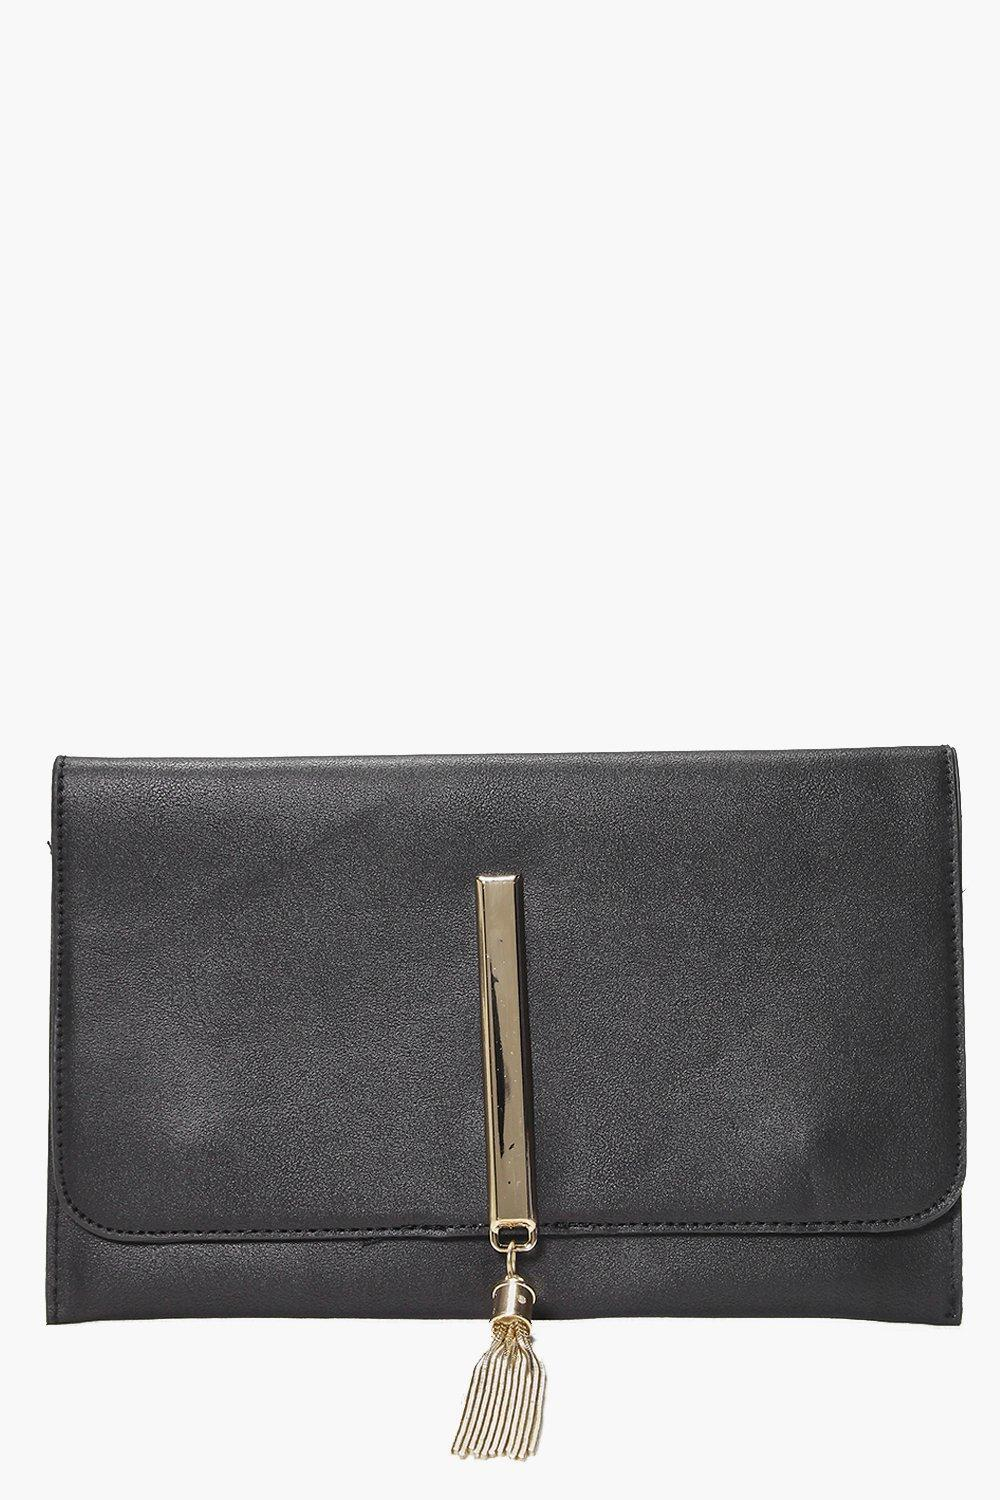 Metal Tassel Clutch Bag Black - predominant colour: black; occasions: evening; type of pattern: standard; style: clutch; length: hand carry; size: small; material: faux leather; embellishment: tassels; pattern: plain; finish: plain; season: s/s 2016; wardrobe: event